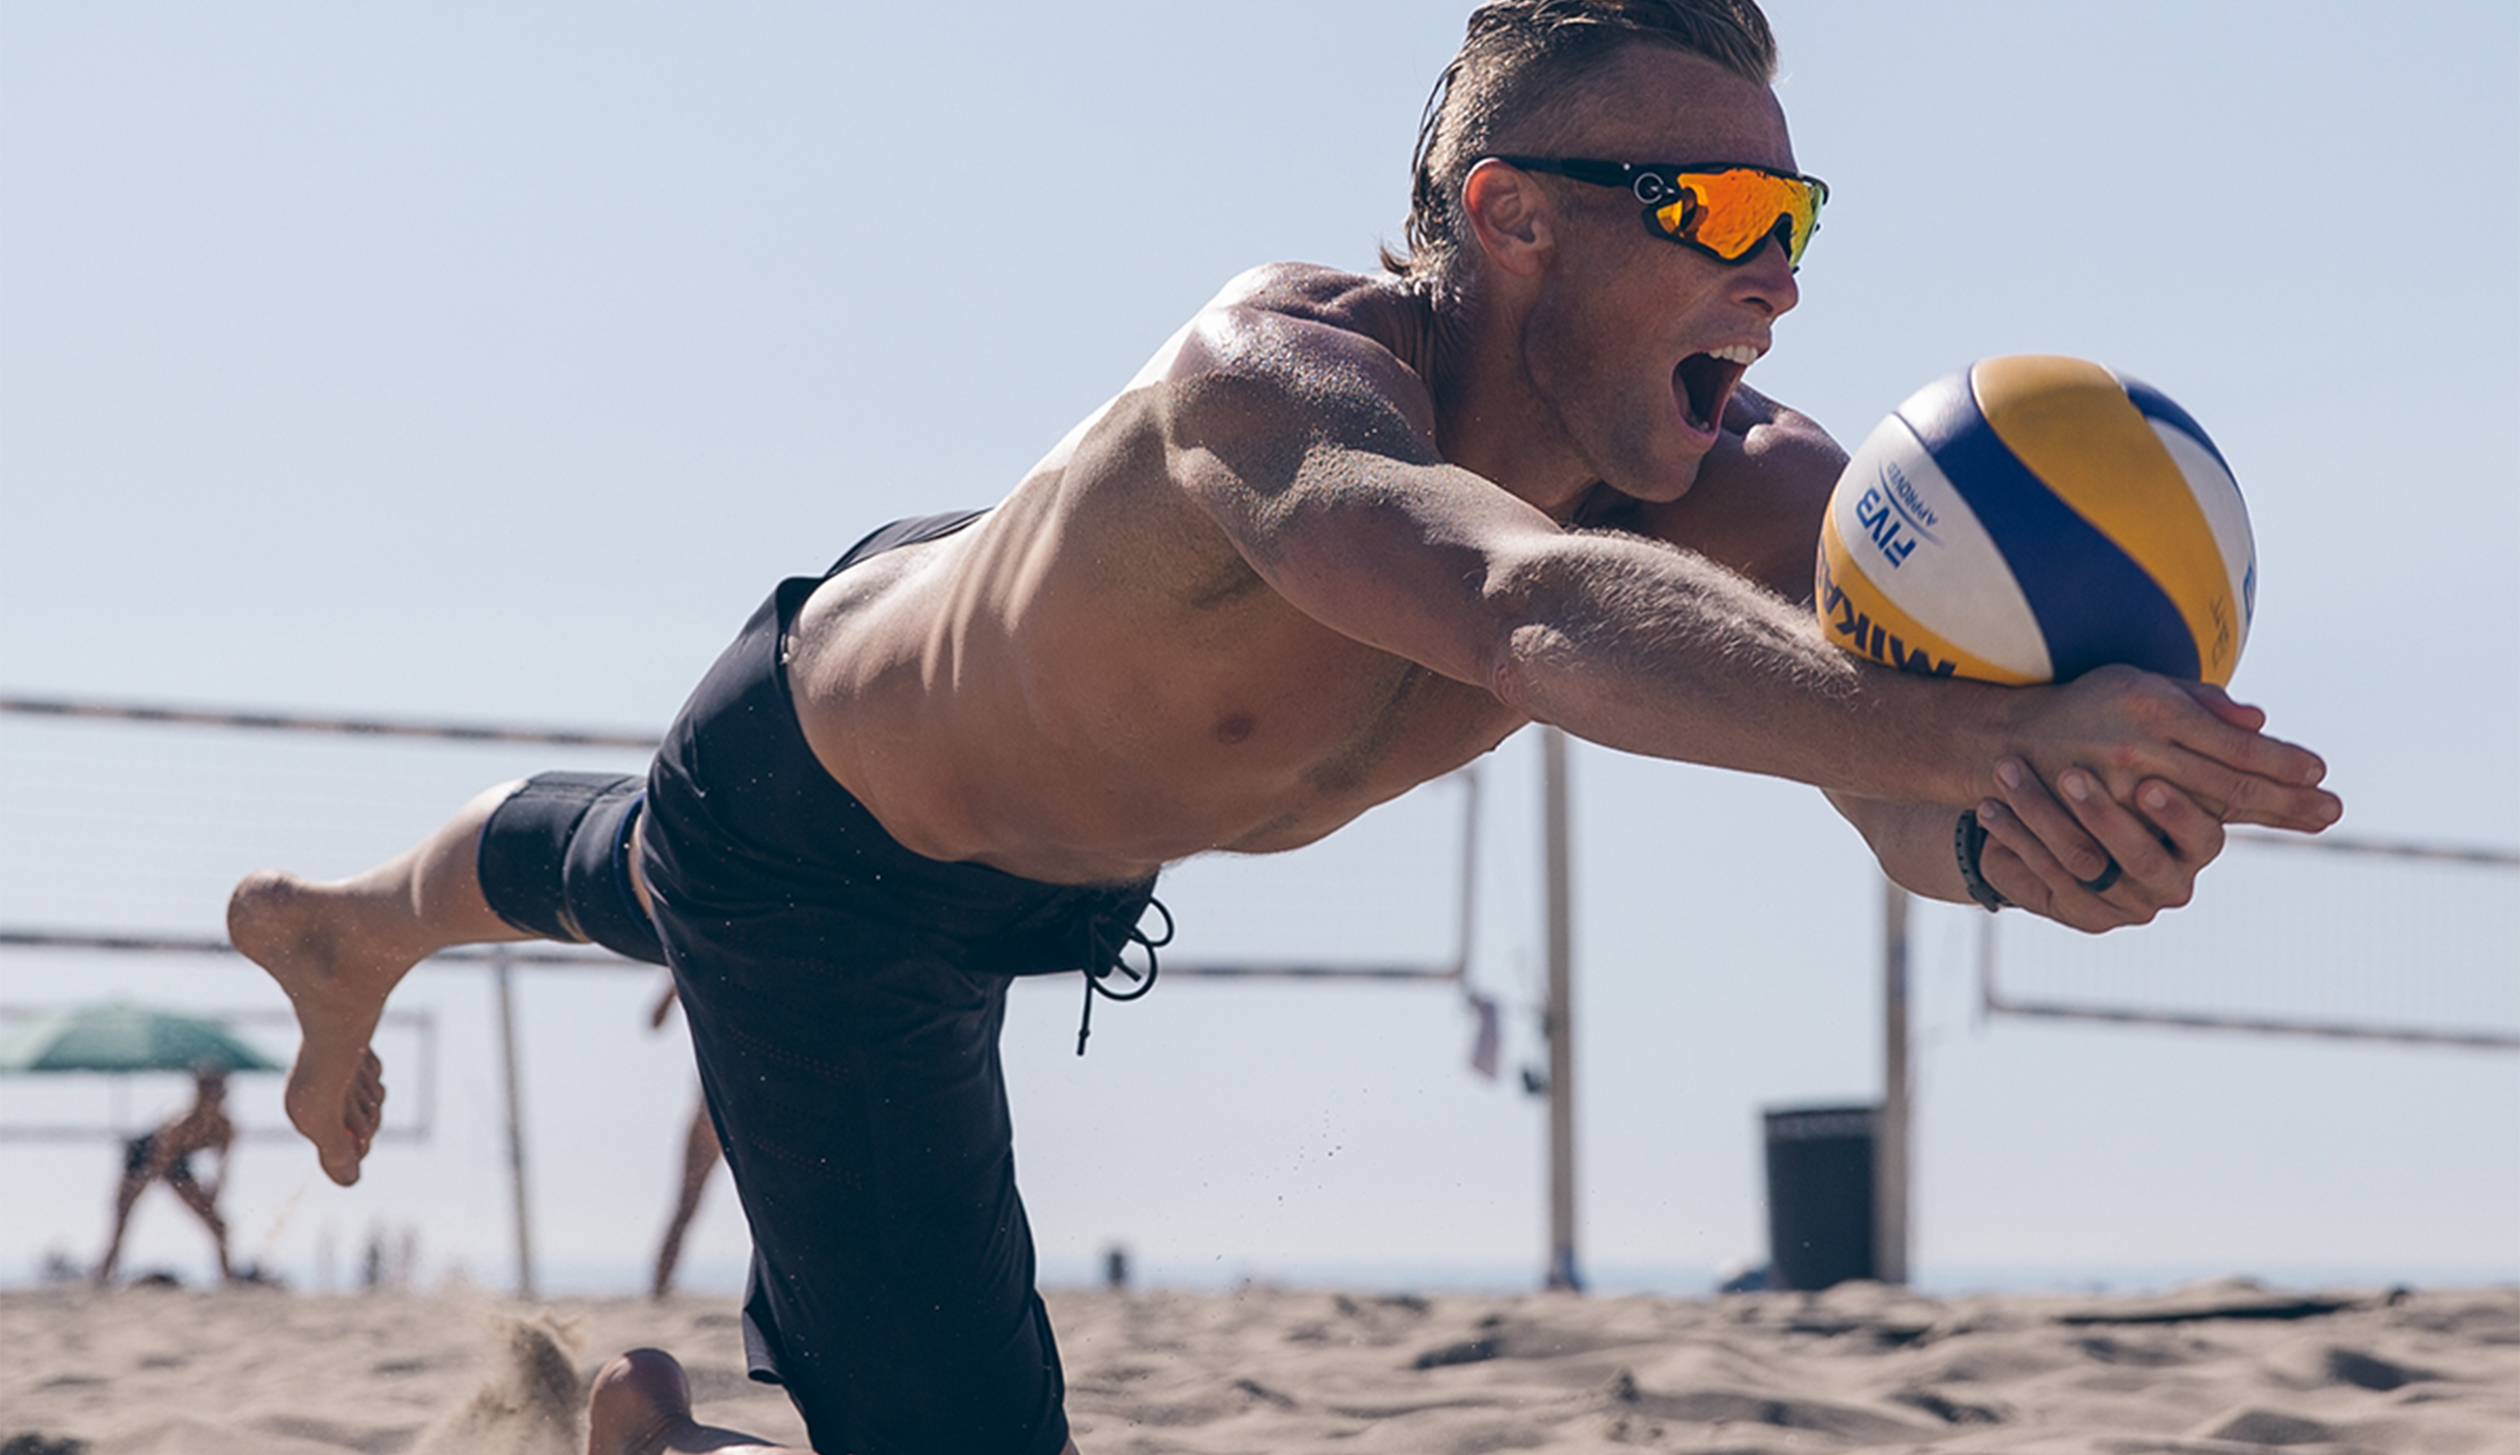 Lululemon is outfitting beach volleyball athletes at the Summer Olympics in Rio, including American athlete Casey Patterson (above).